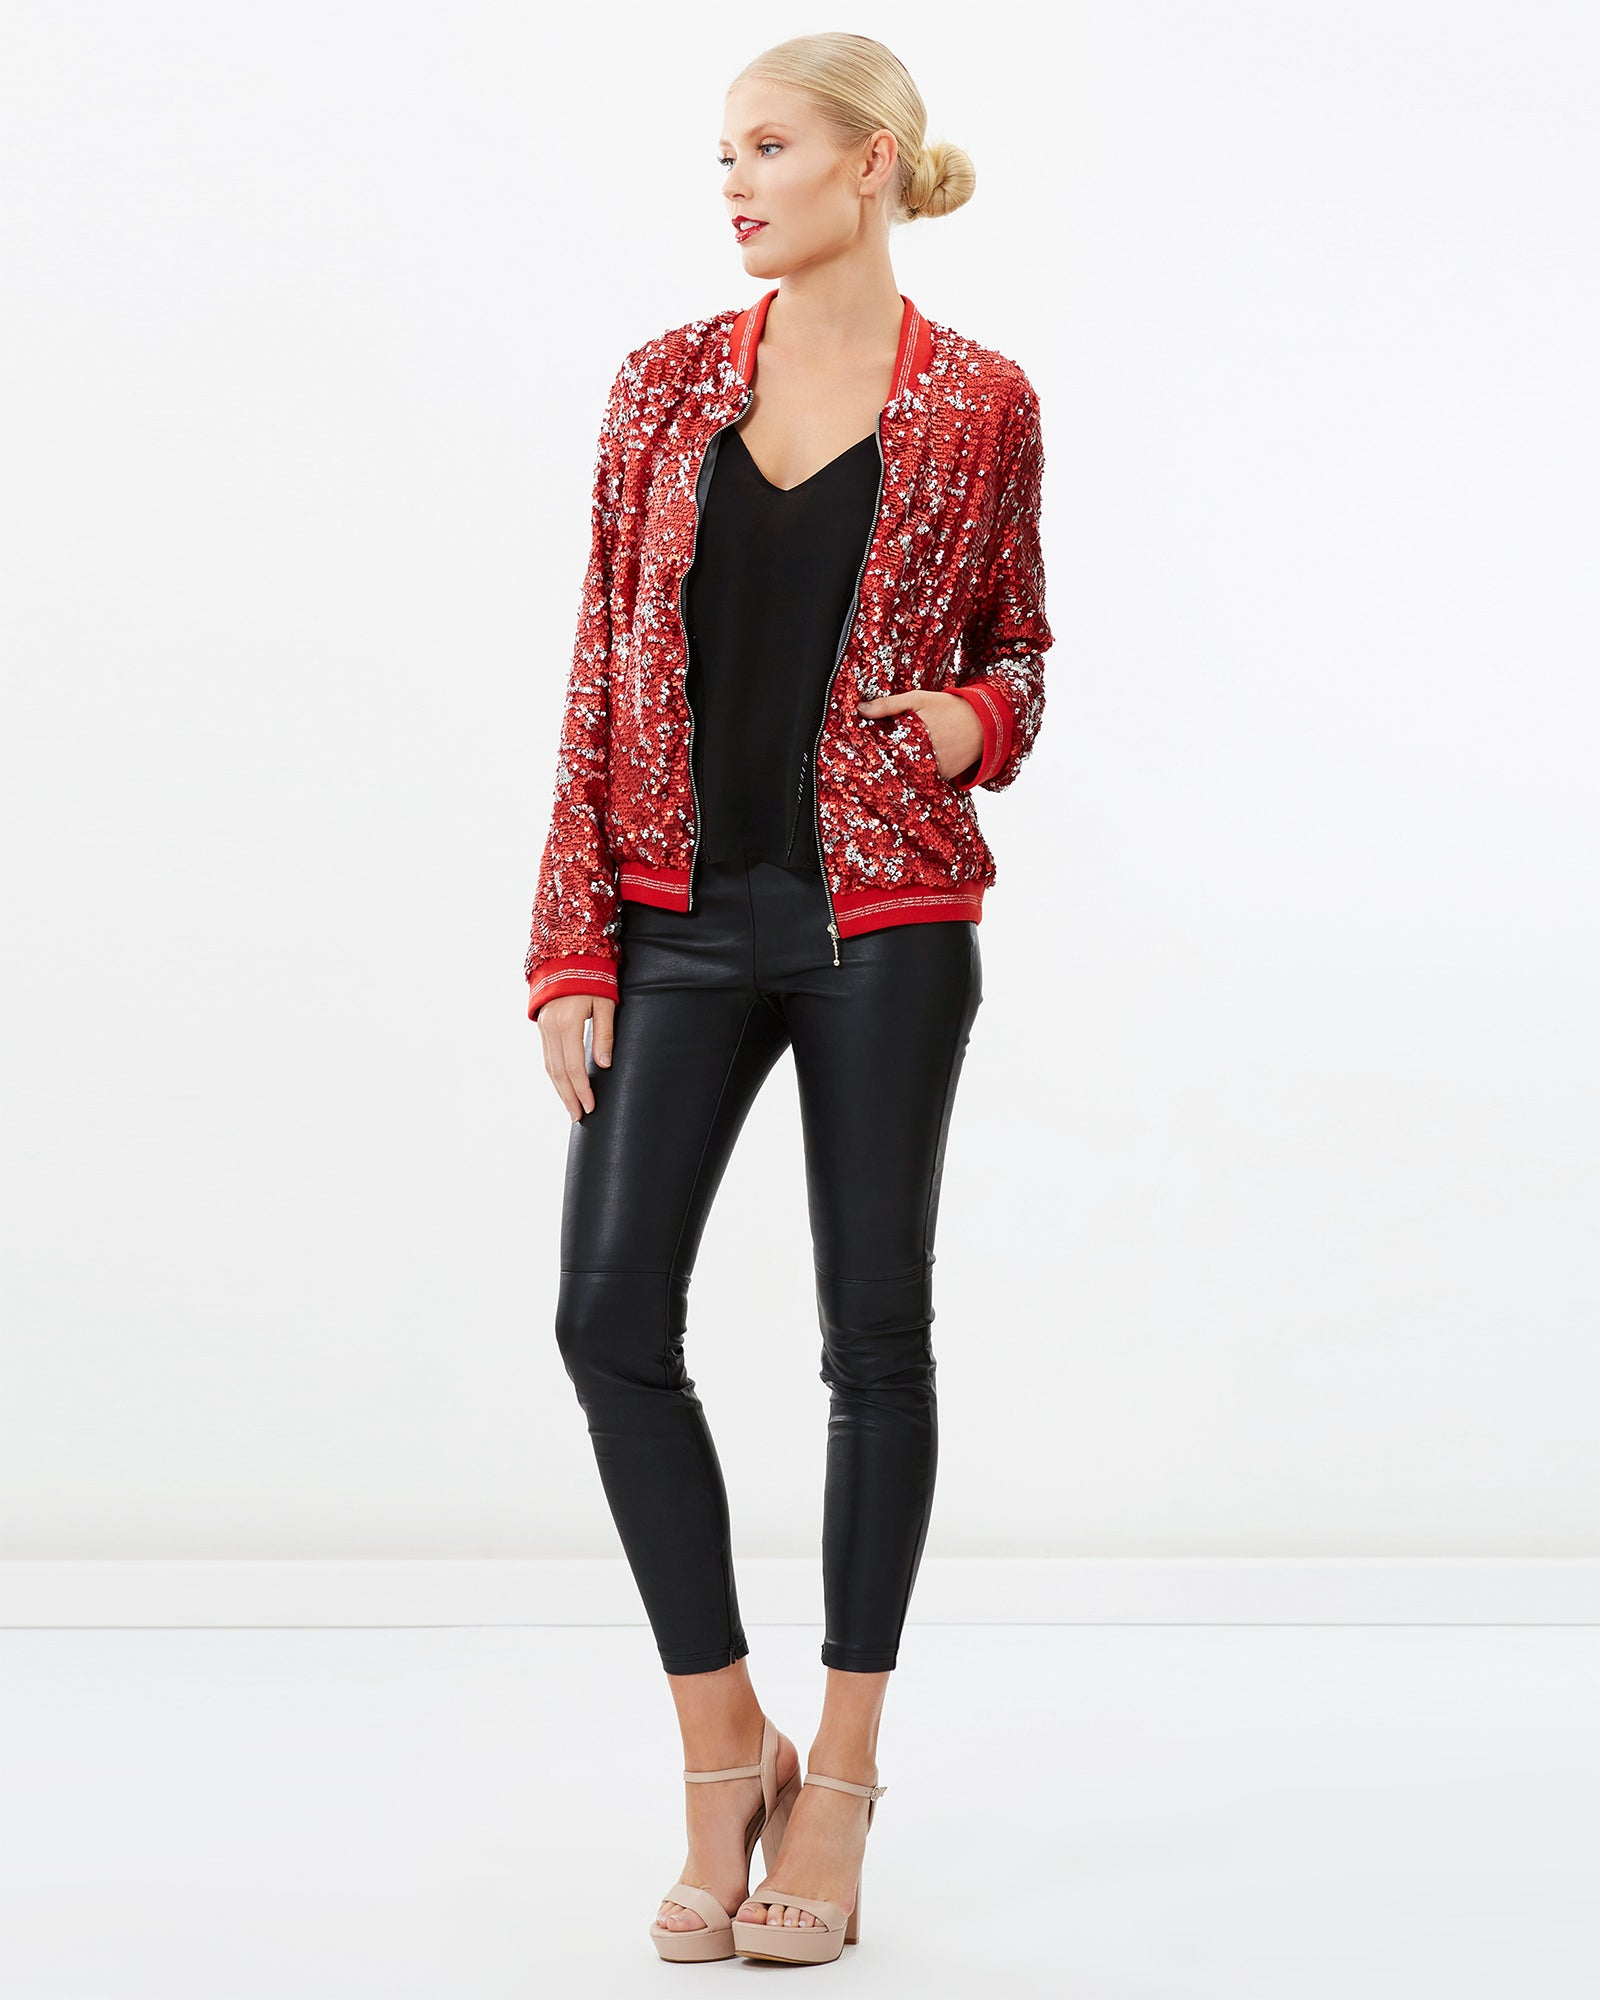 TWO-TONED SEQUINS BOMBER JACKET